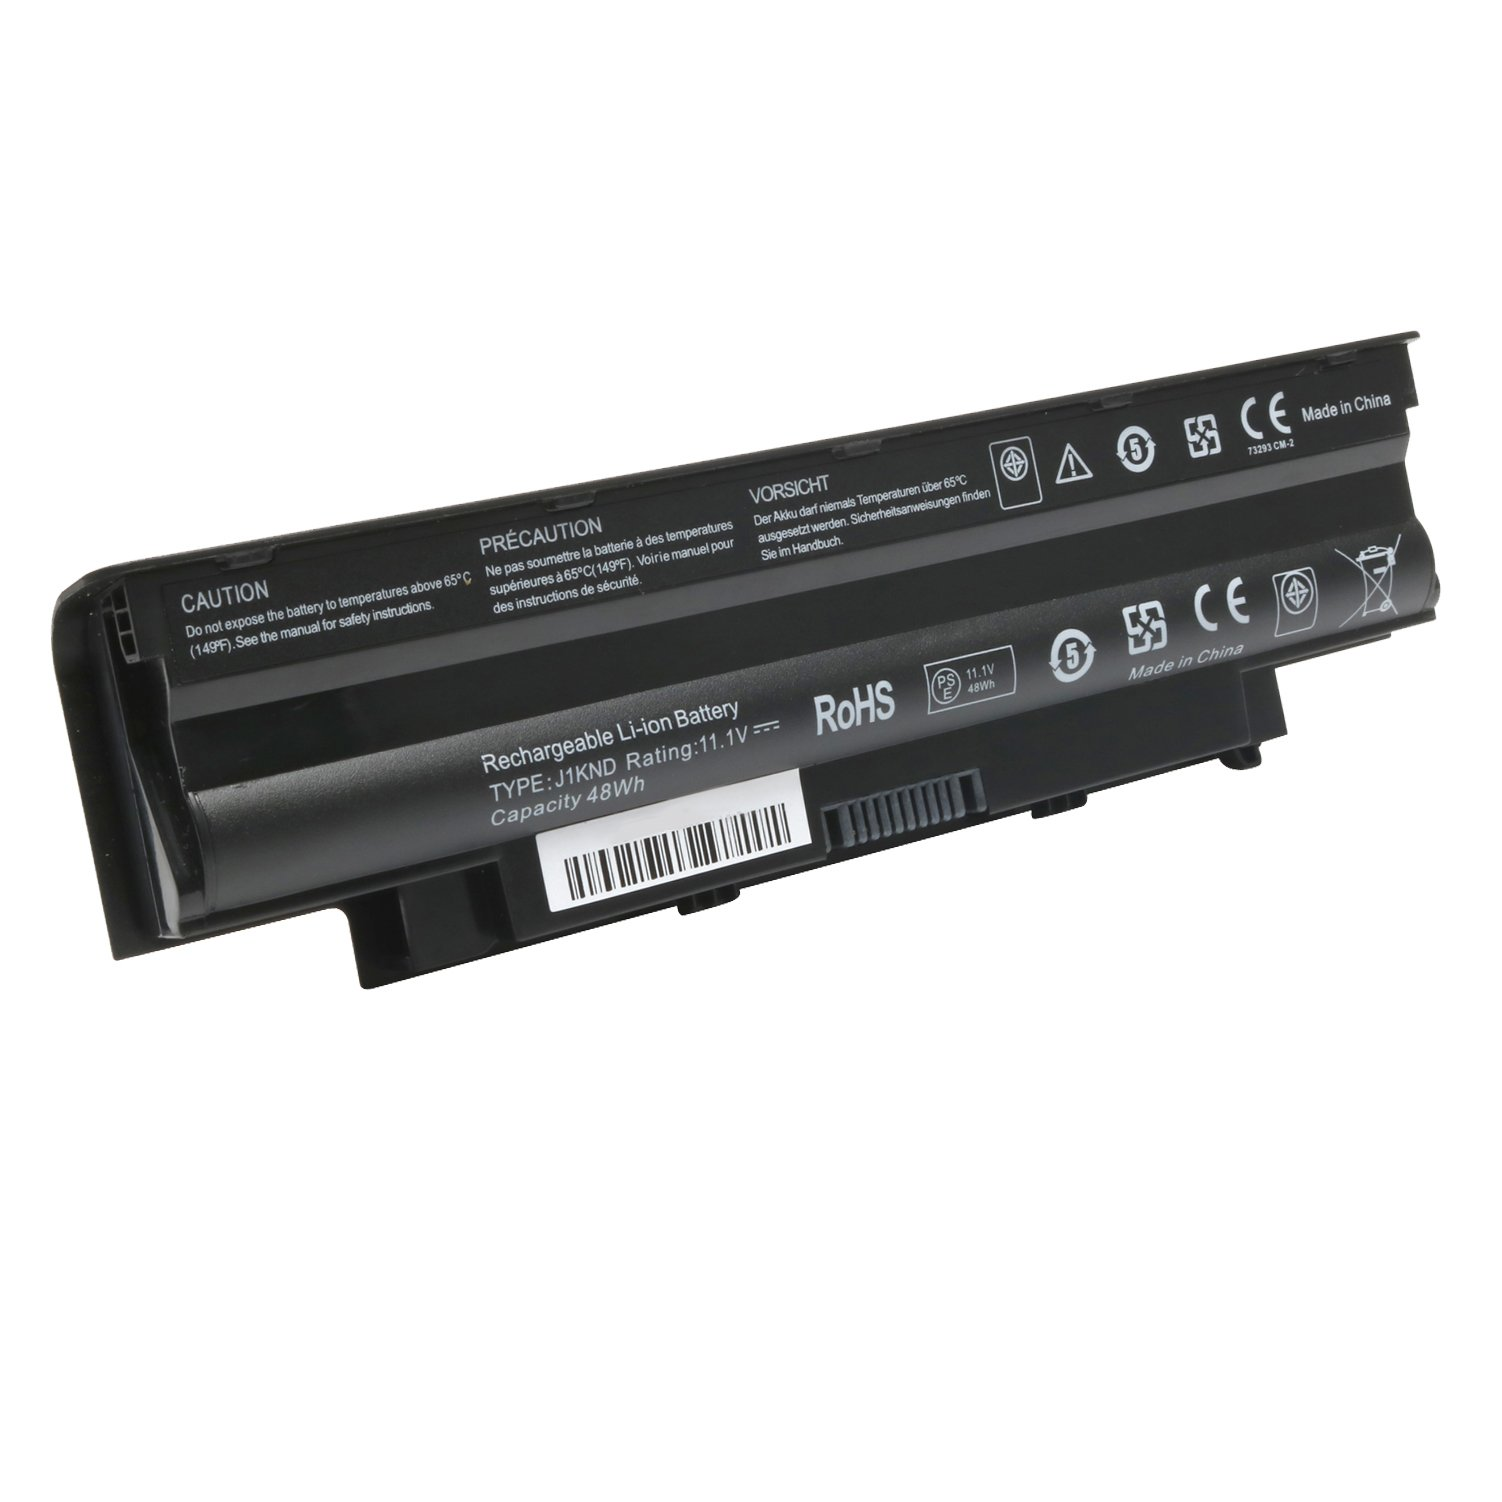 Reo 11.1V 48Wh Laptop J1KND Battery for Dell Inspiron 3420 3520 13R 14R 15R 17R N3010 N4010 N4110 N5030 N5050 N5010 N5110 N7010 N7110 M5110 M4110 M501 M503, P/N: 4T7JN 04YRJH 07XFJJ 312-0233